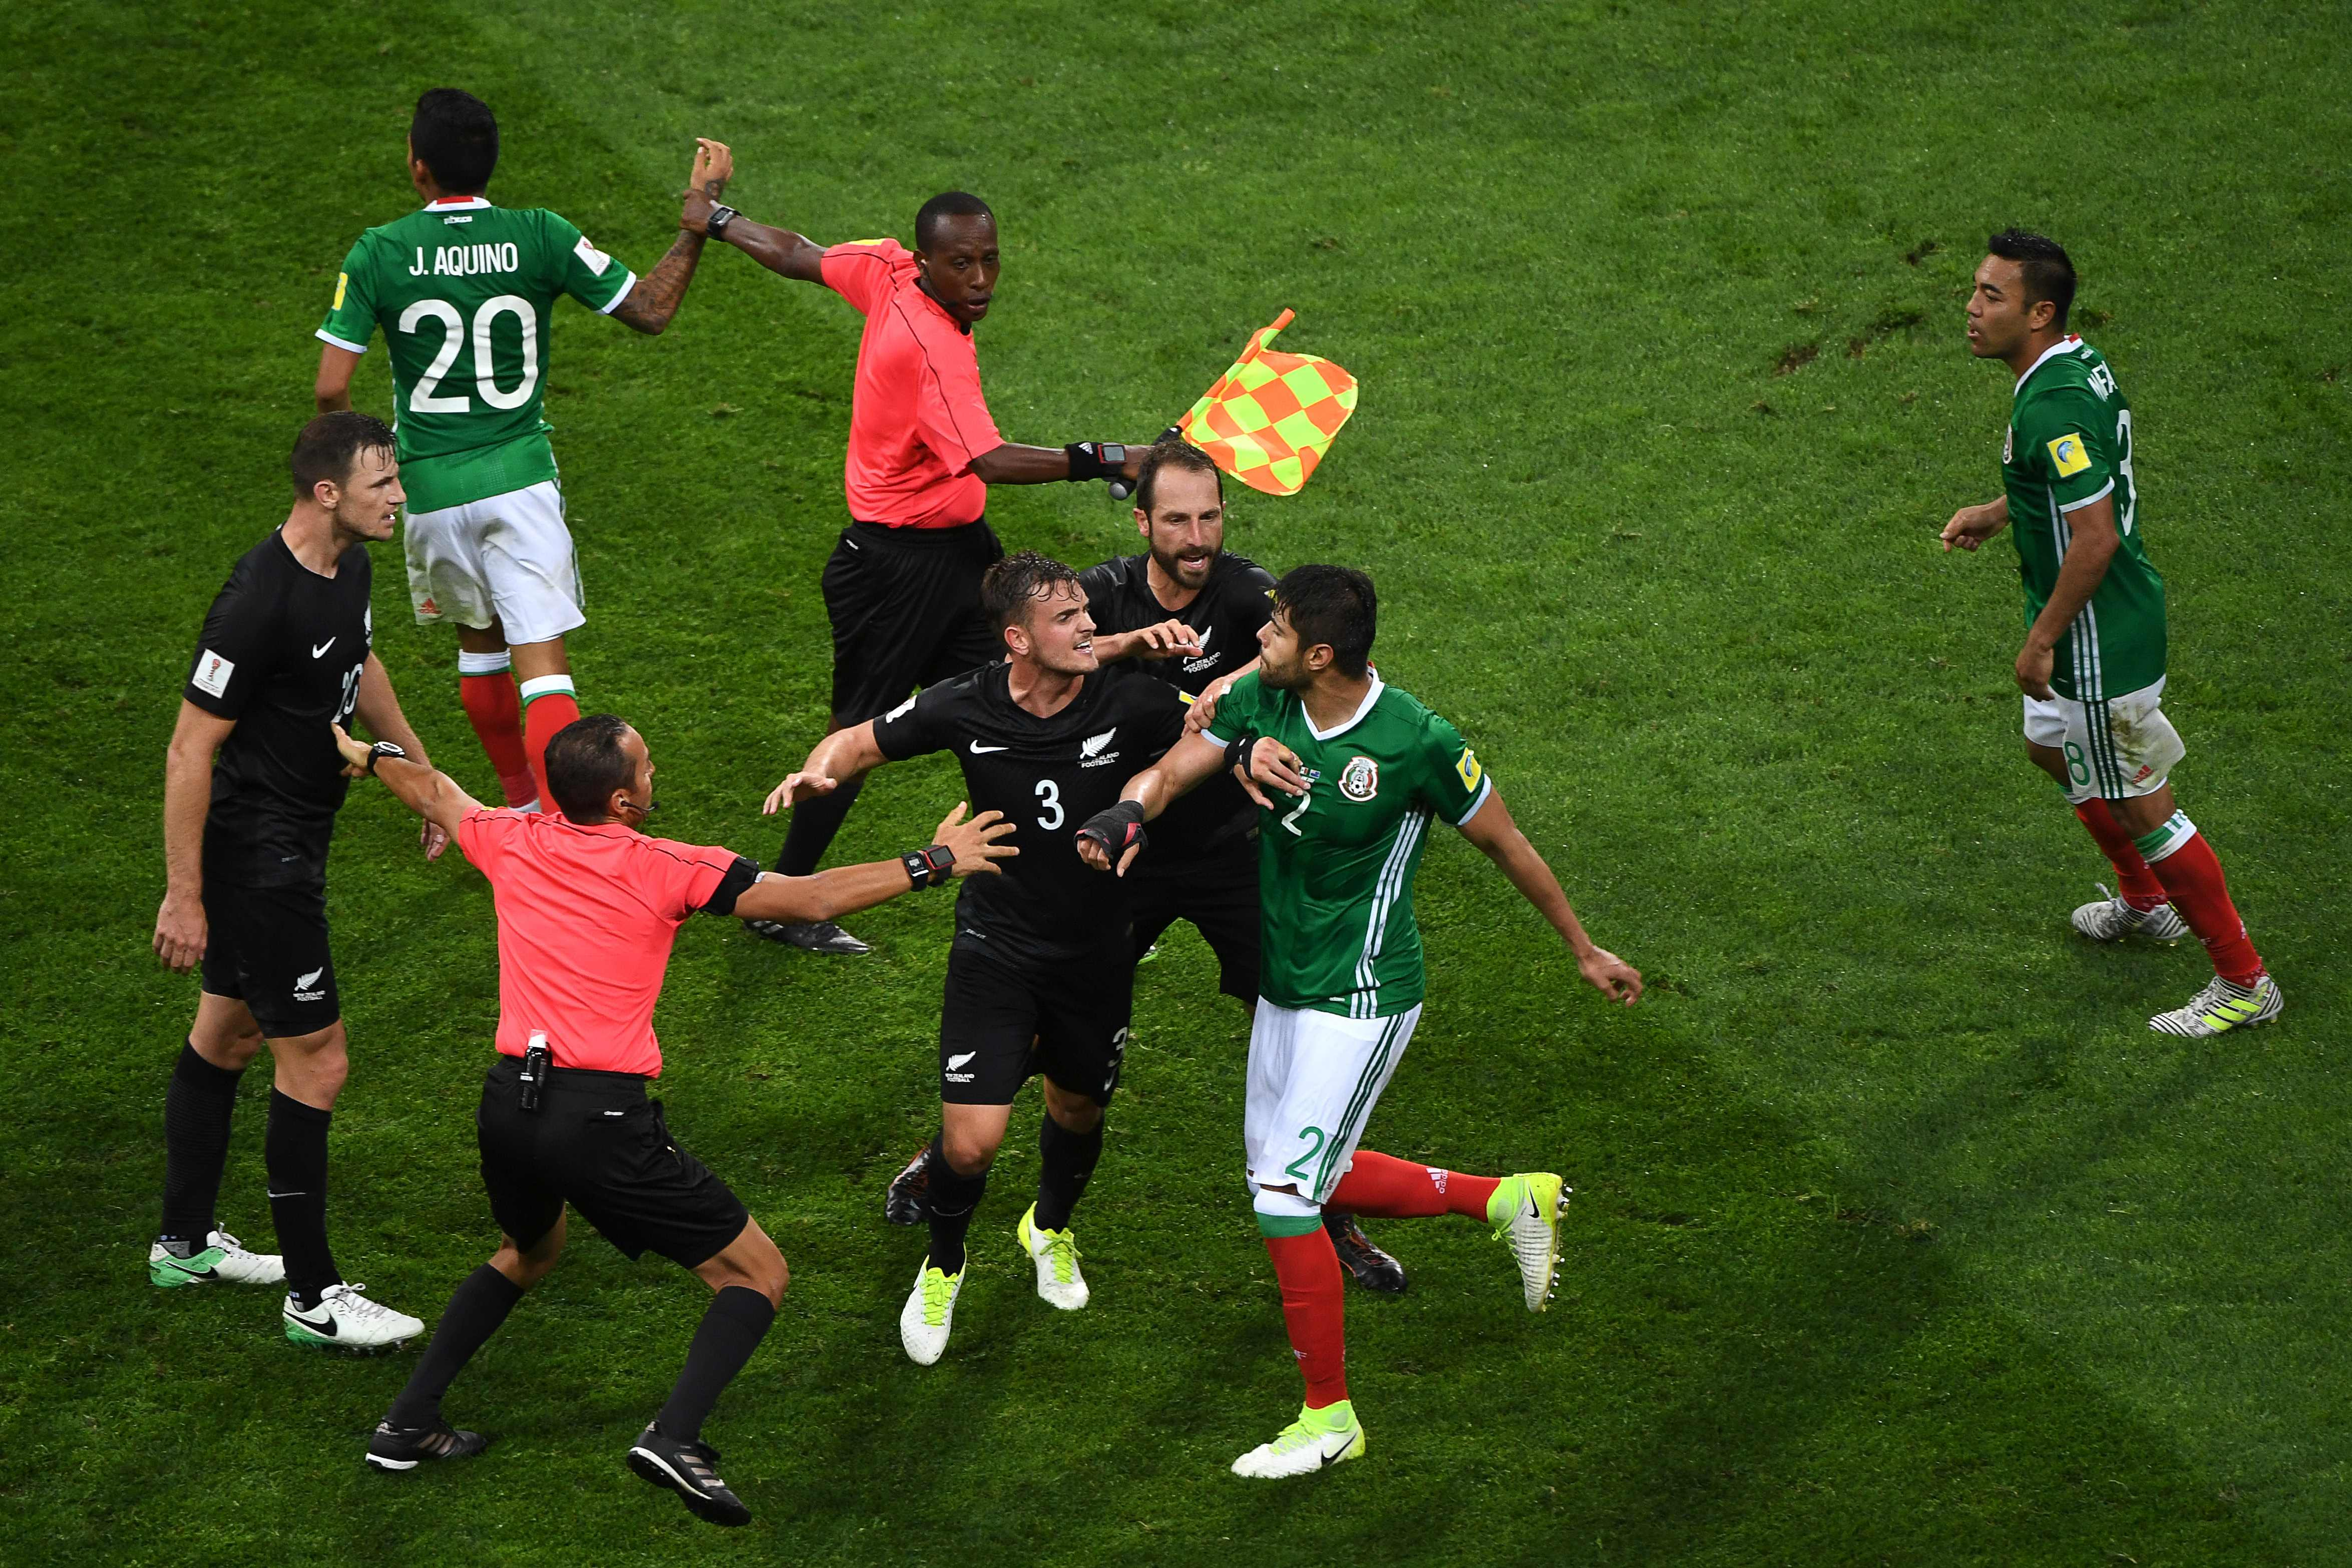 Confederations Cup: Mexico recovers to beat New Zealand in fiery match